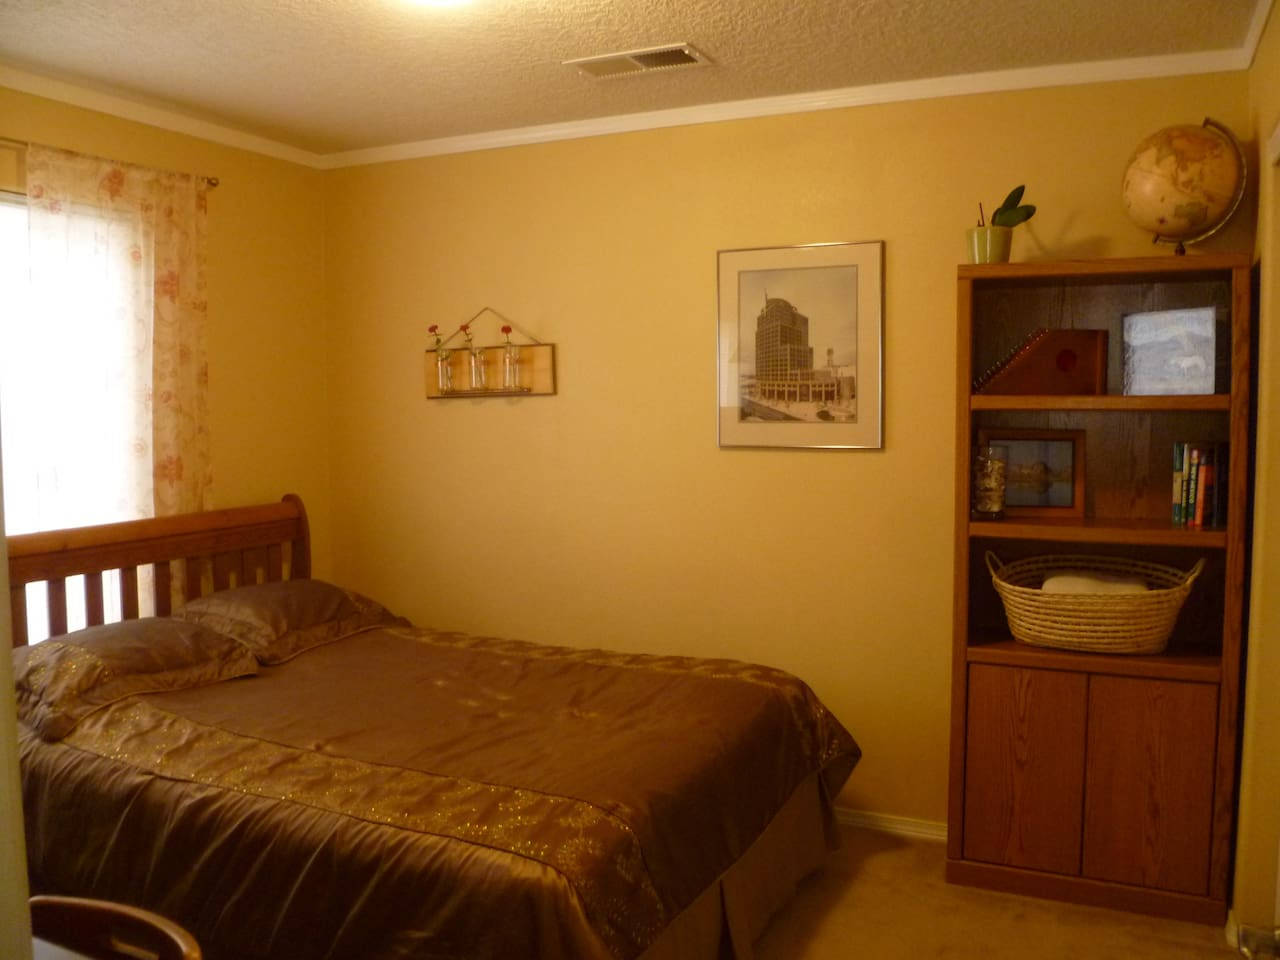 Comfortable private bedroom with Queen-sized bed, desk and ceiling fan.